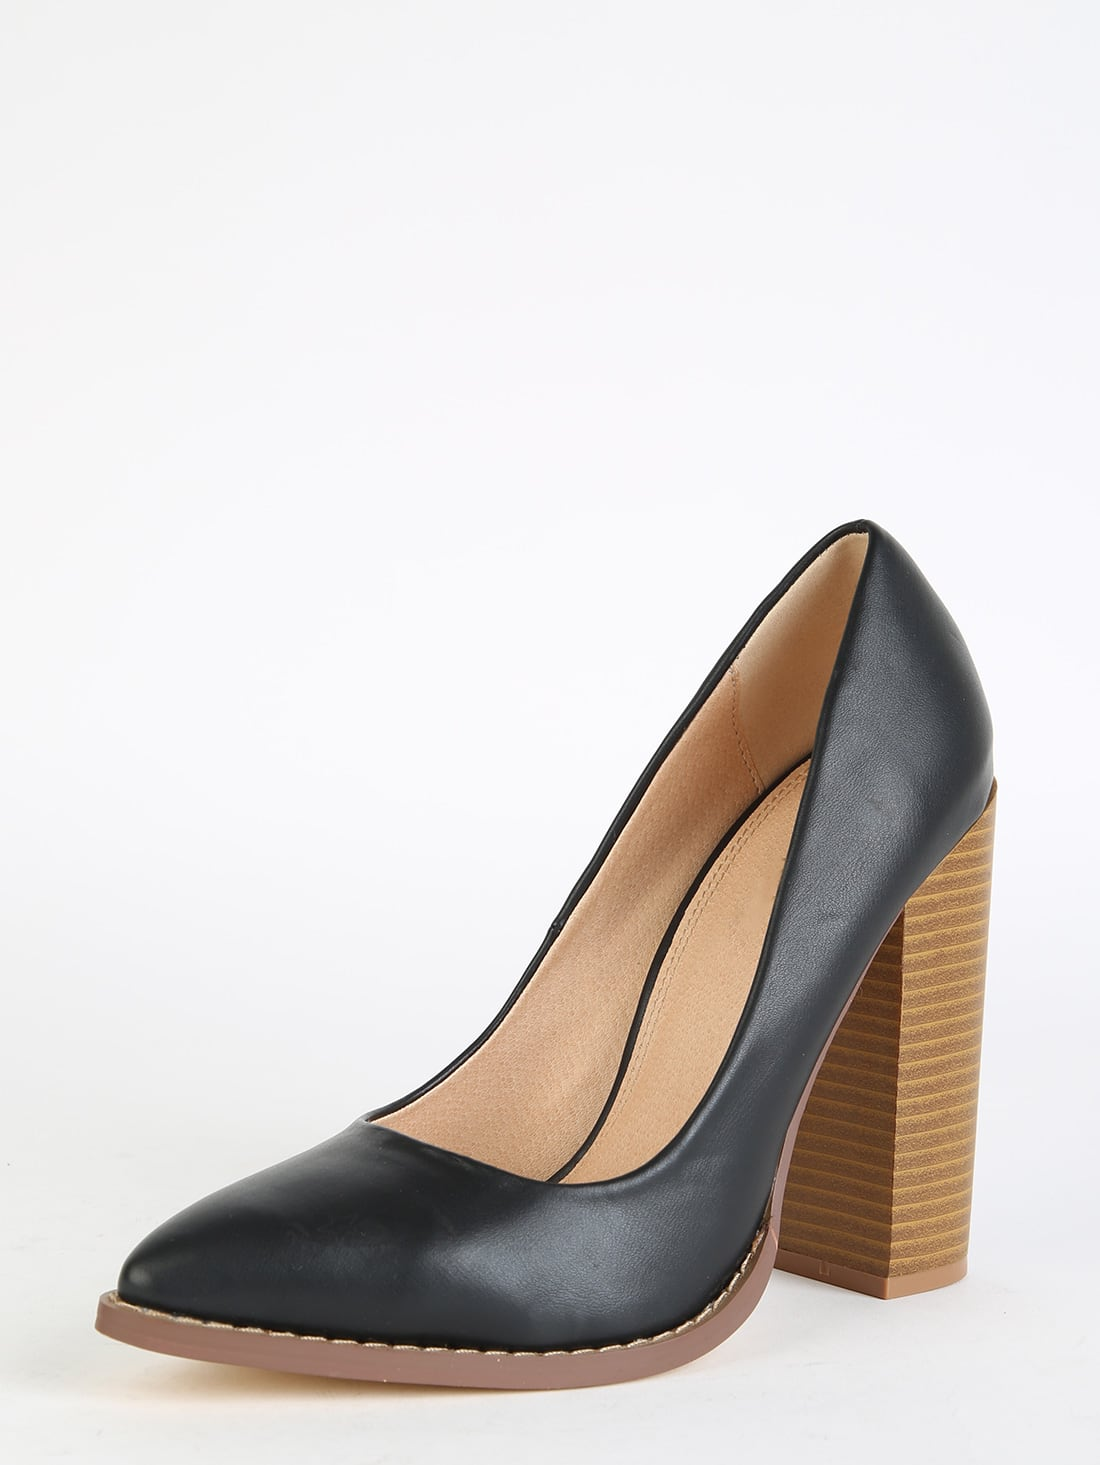 Shop for black pointed toe pump online at Target. Free shipping on purchases over $35 and save 5% every day with your Target REDcard.